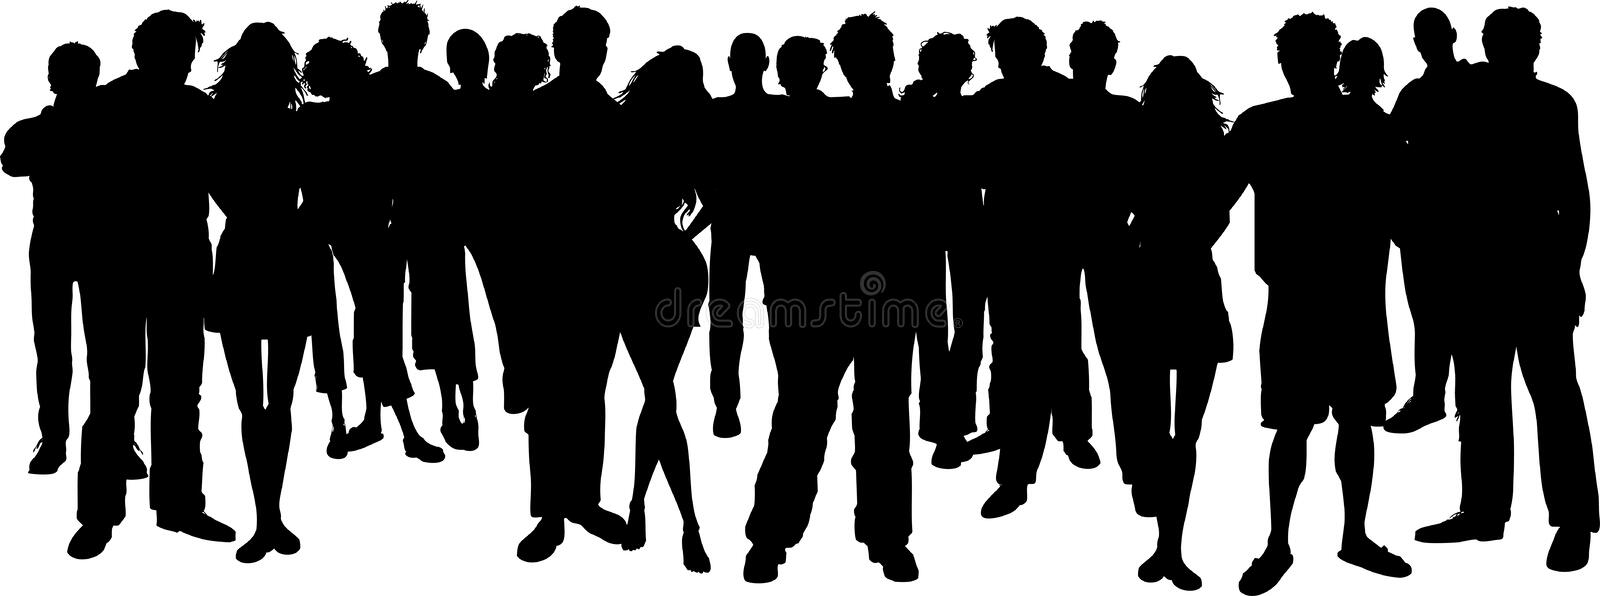 Huge group of people royalty free illustration